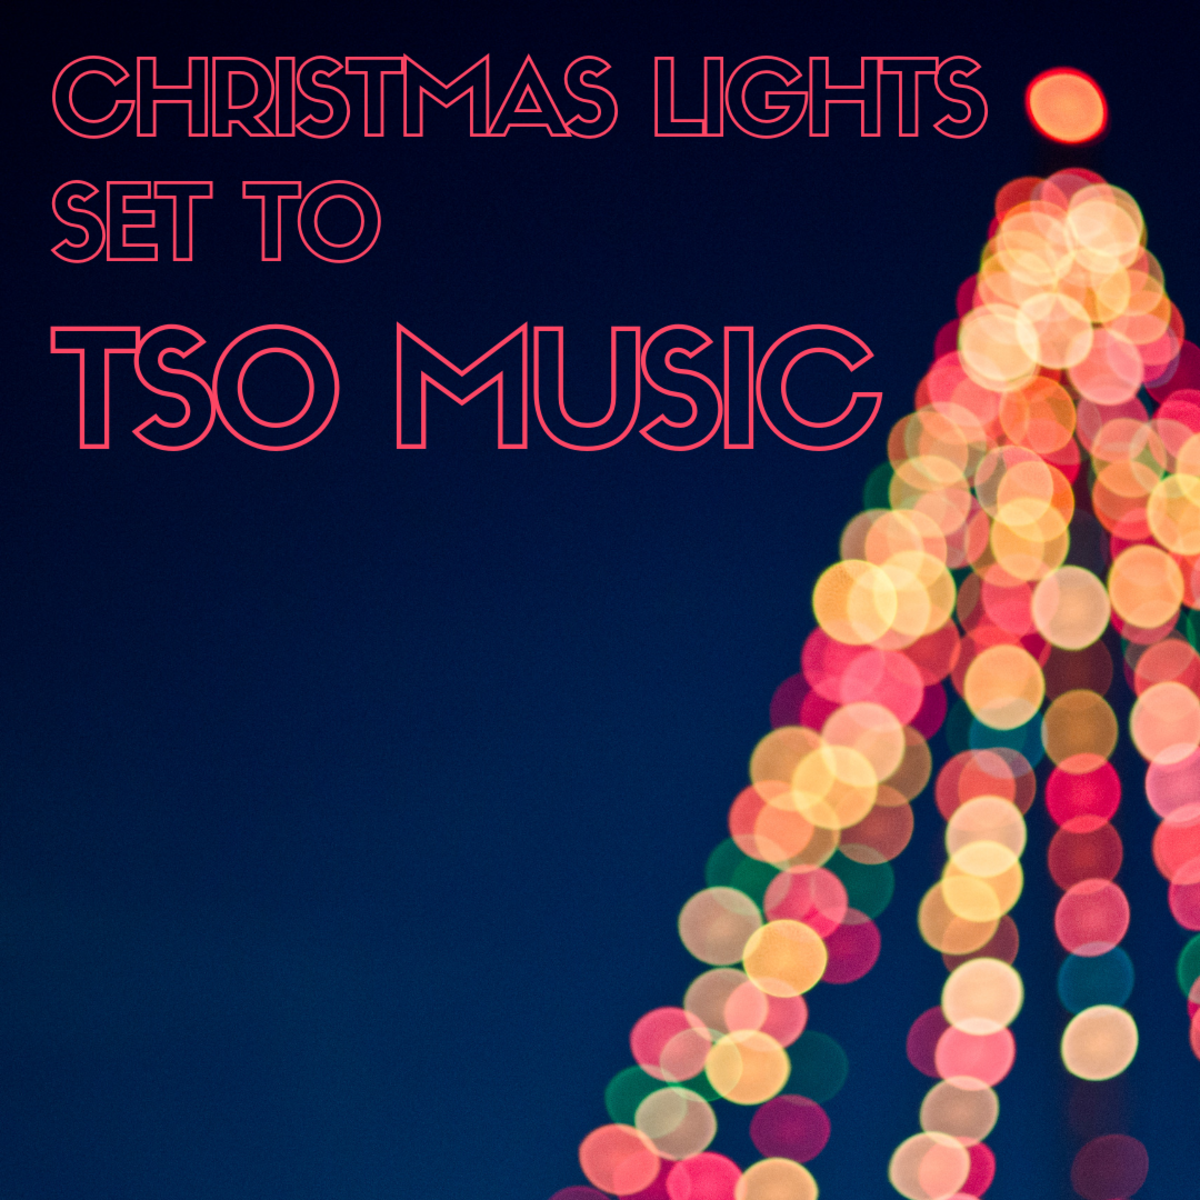 Christmas Lights Set to TSO